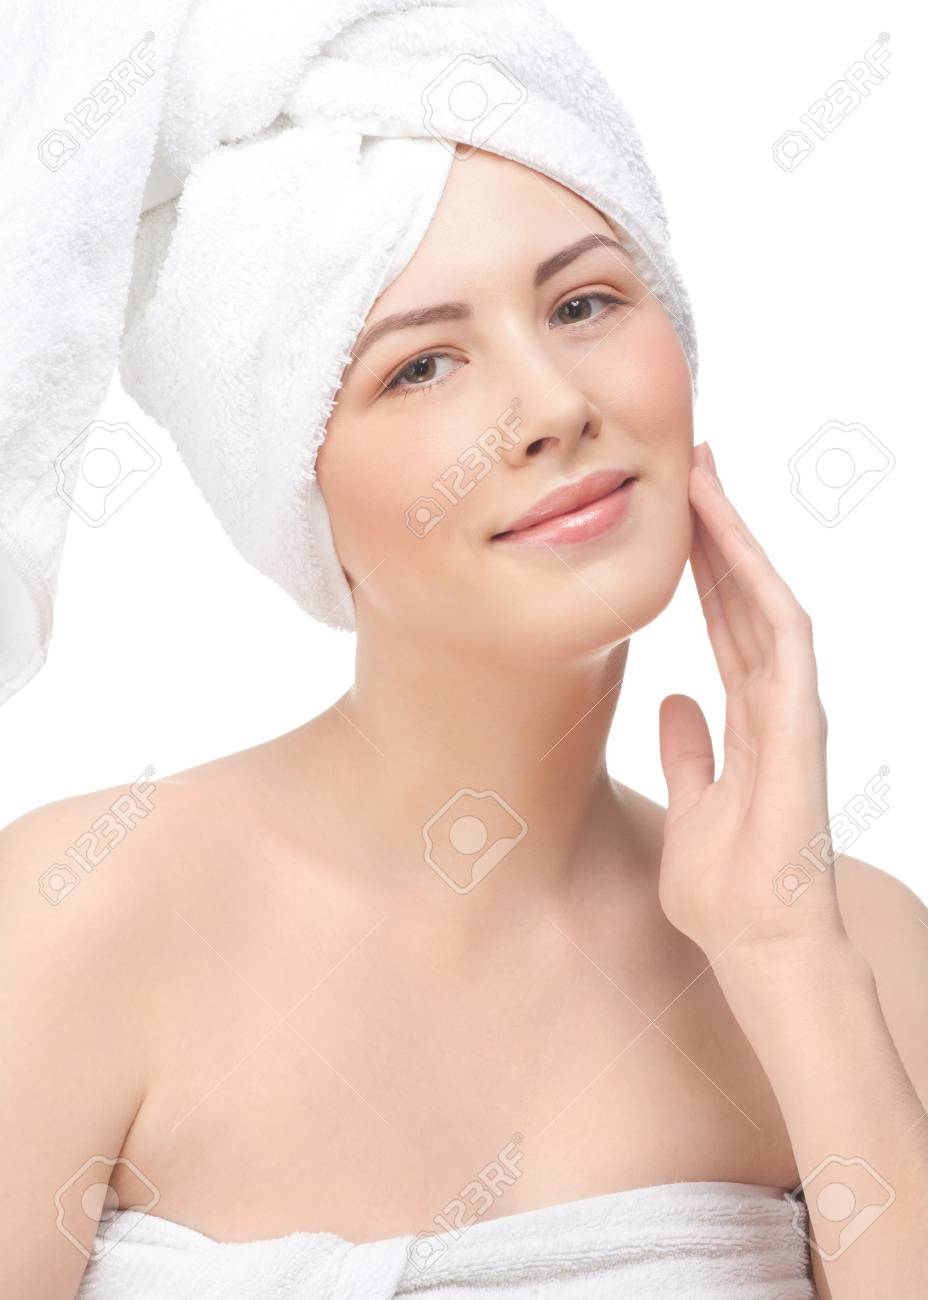 Portrait of young beautiful woman applying moisturizing cream on her face, isolated on white background Stock Photo - 12794903